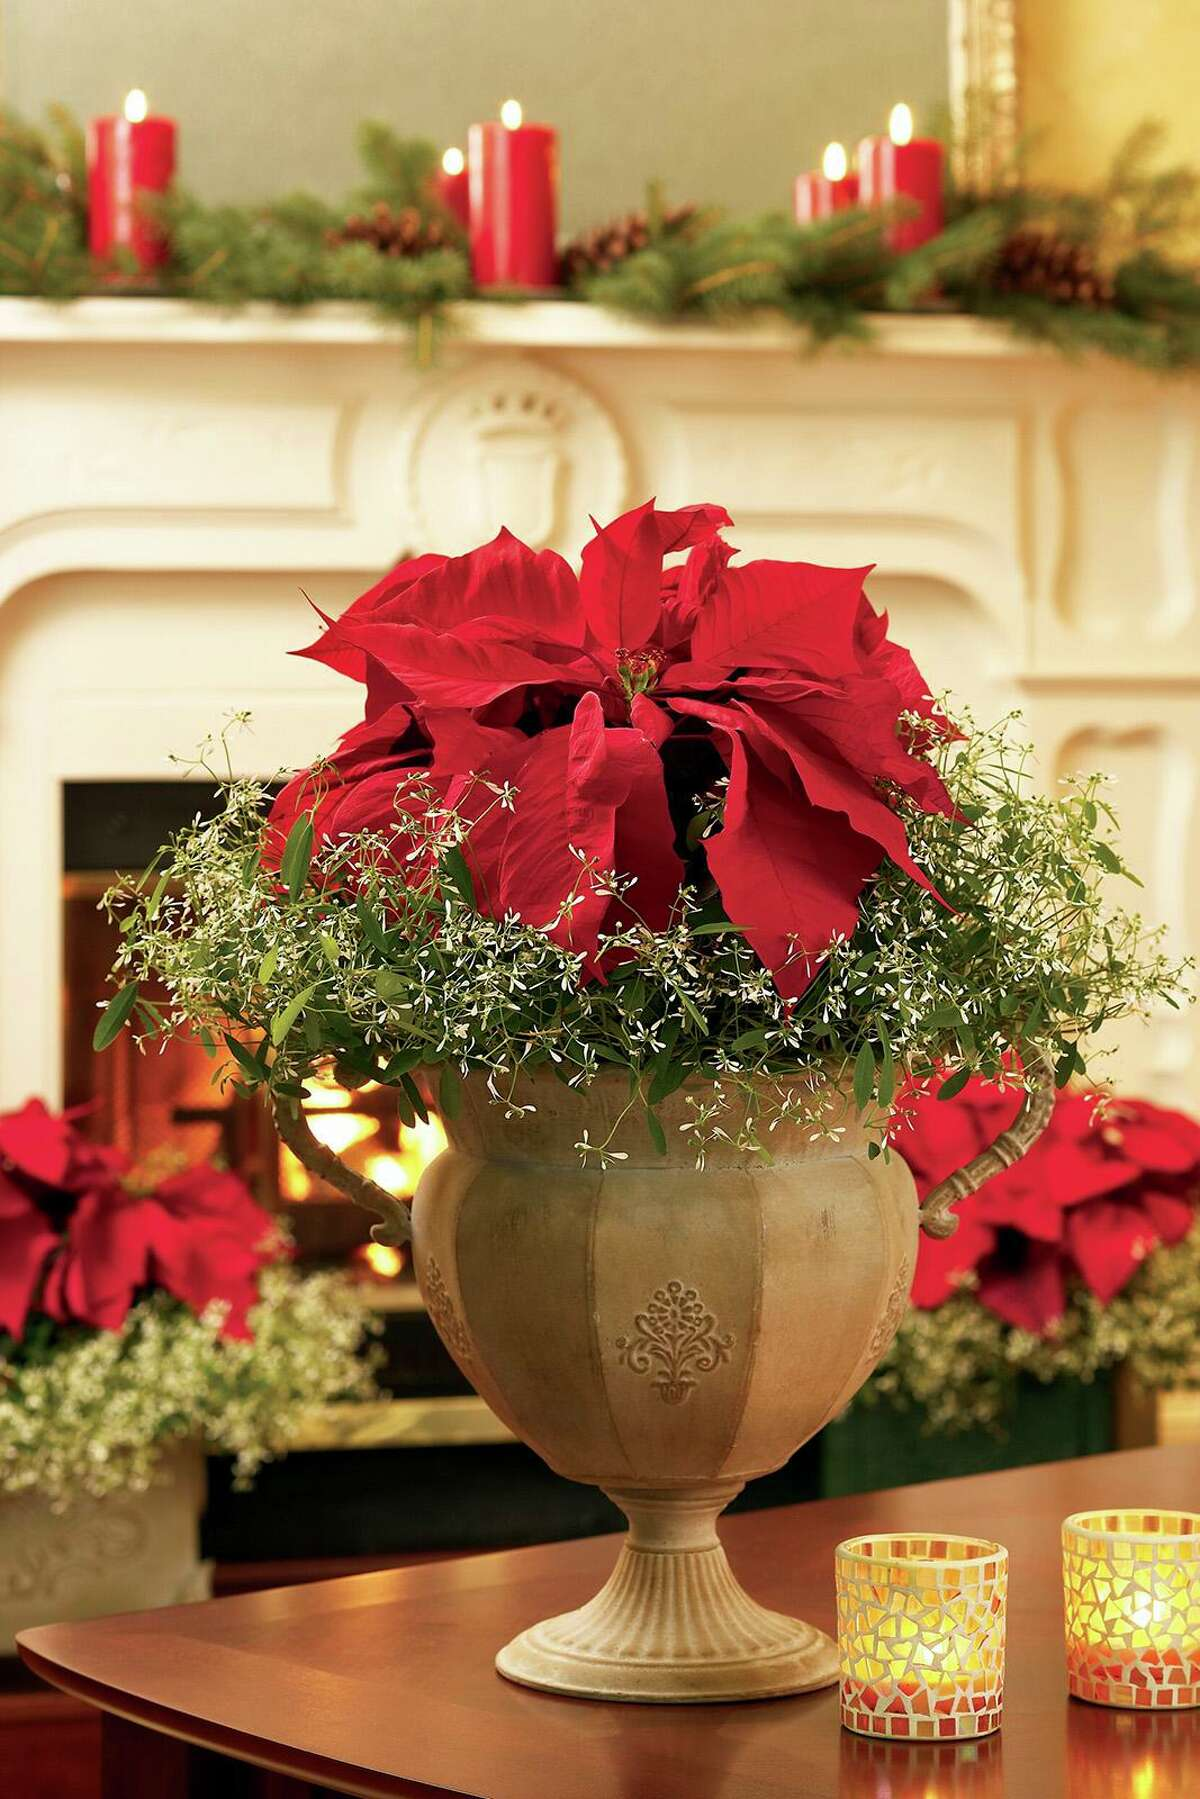 Poinsettias are of one of the traditional Christmas gift flowers that will long outlast the holidays with proper care.